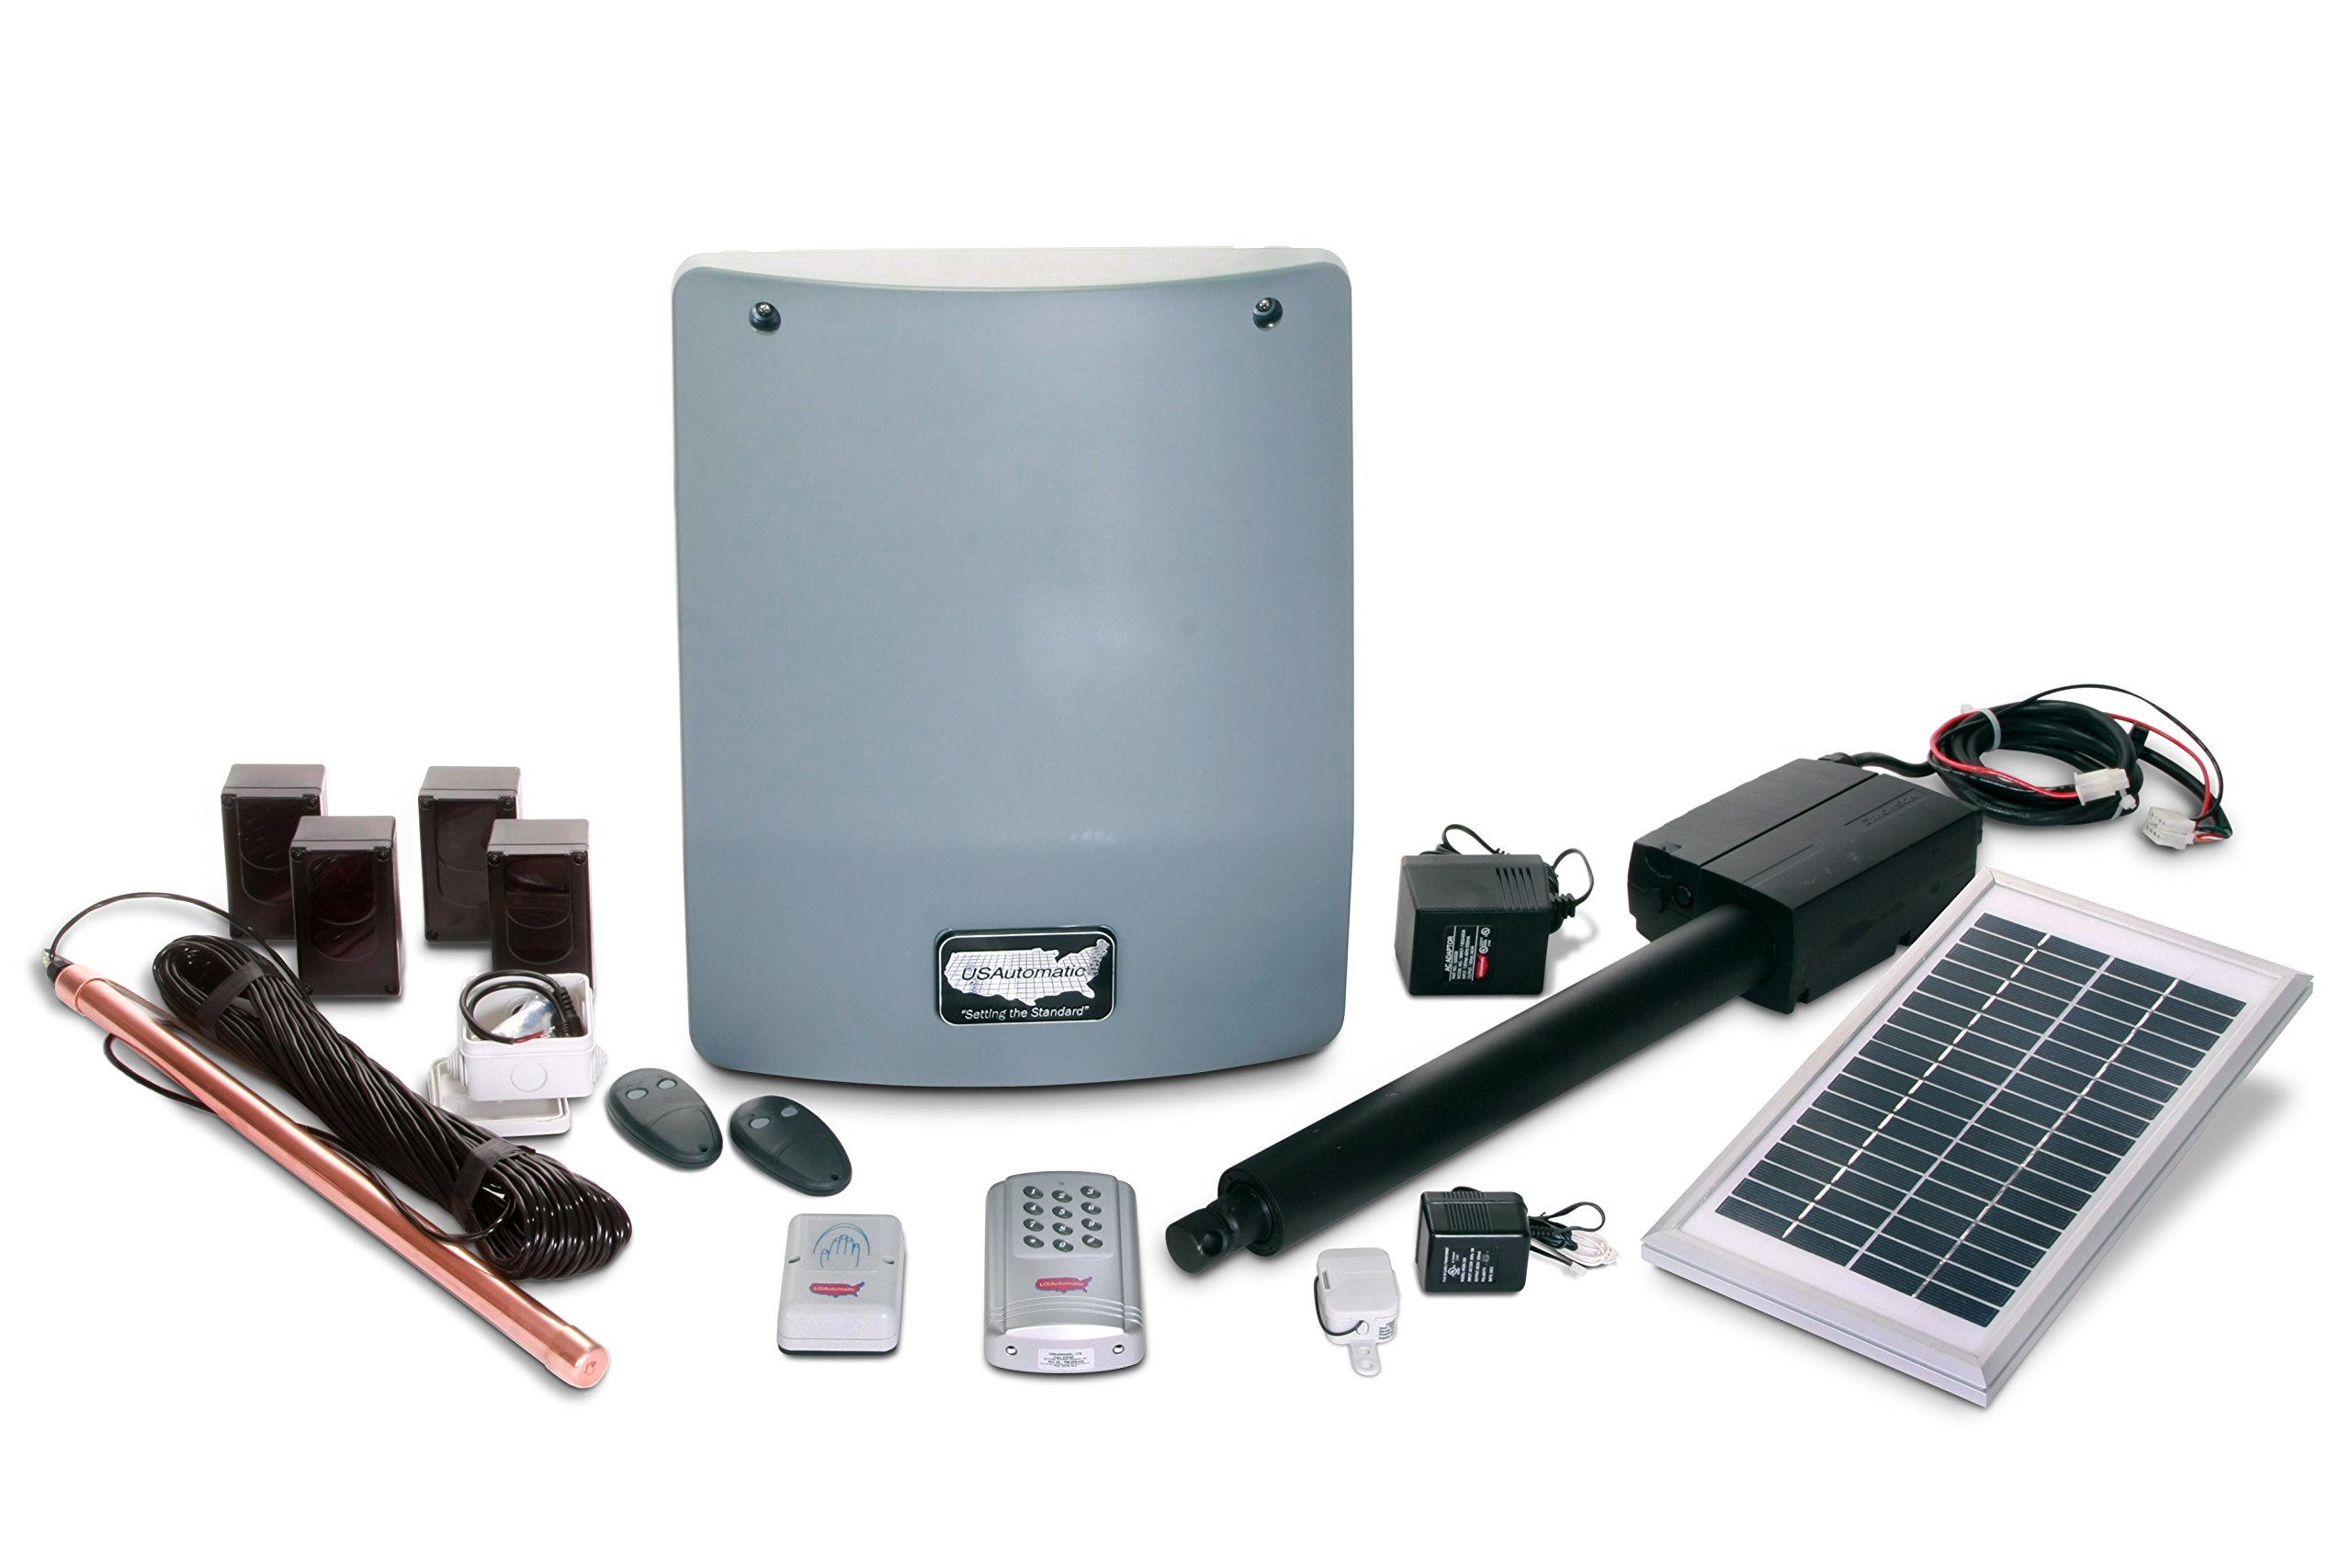 USAutomatic 020350 Medium 300 Solar Charged Automatic Gate Opener Single Gate Fully Automated Kit by US Automatic